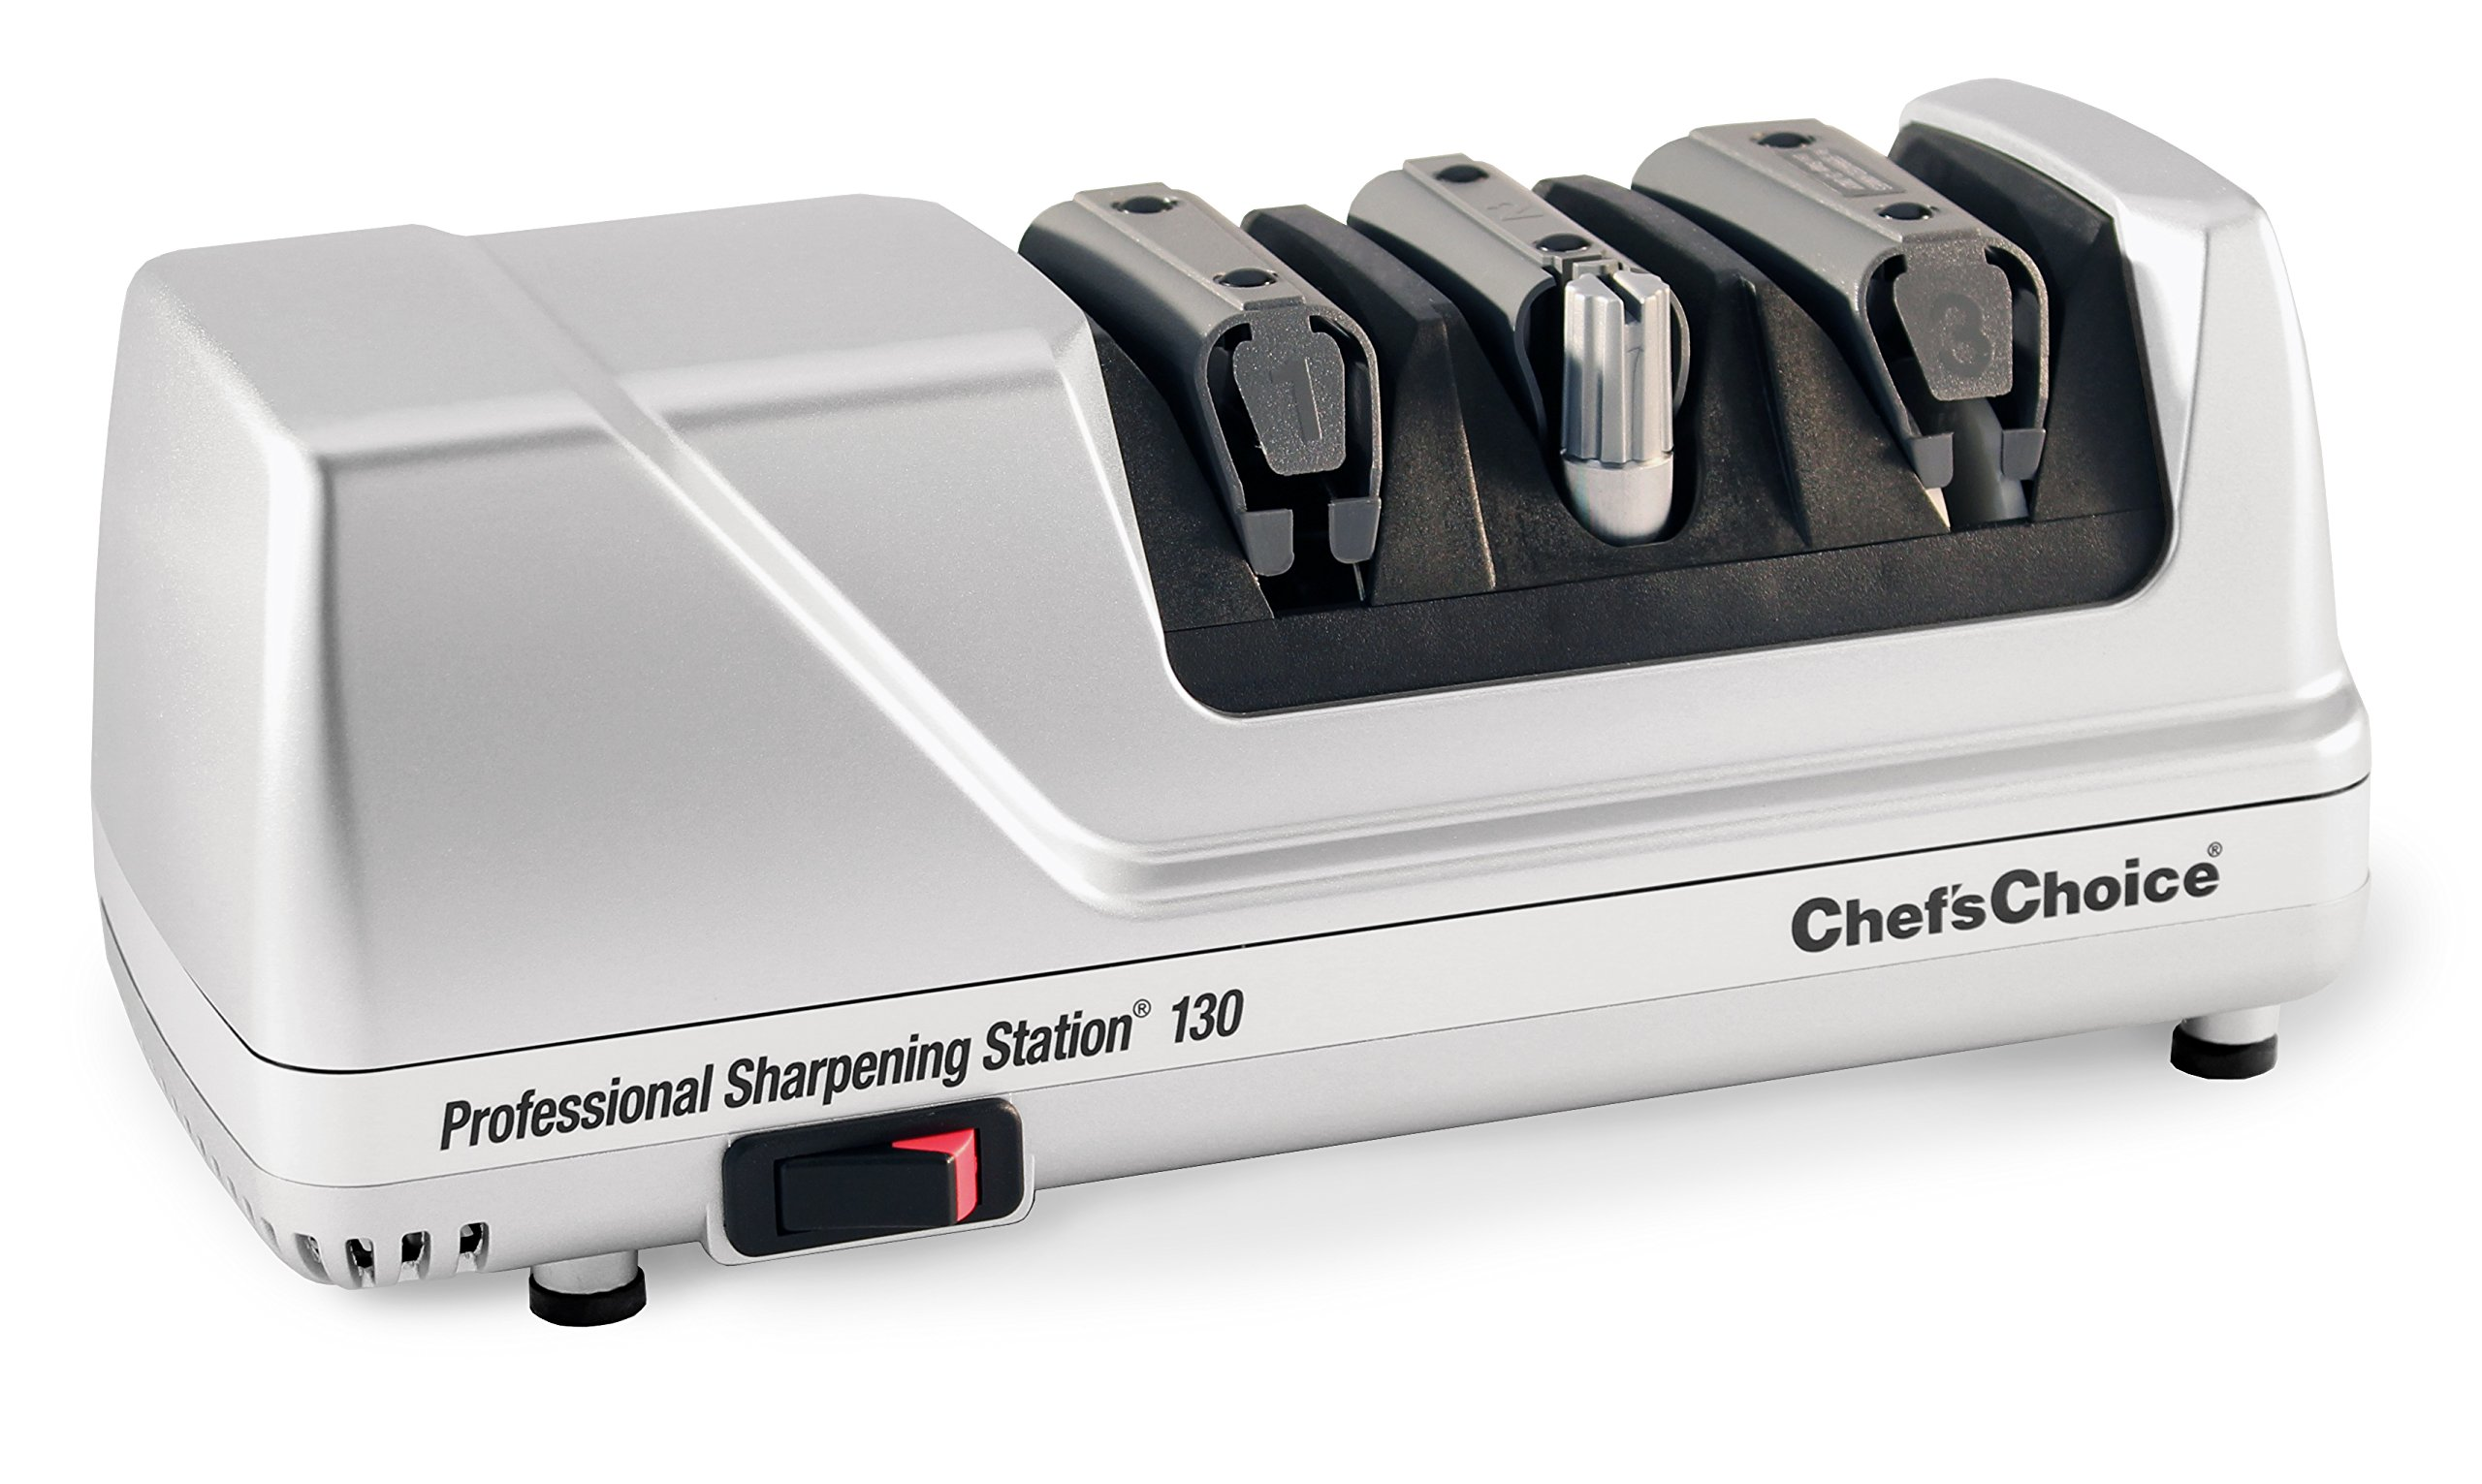 ChefsChoice Professional Sharpening Abrasives Precision